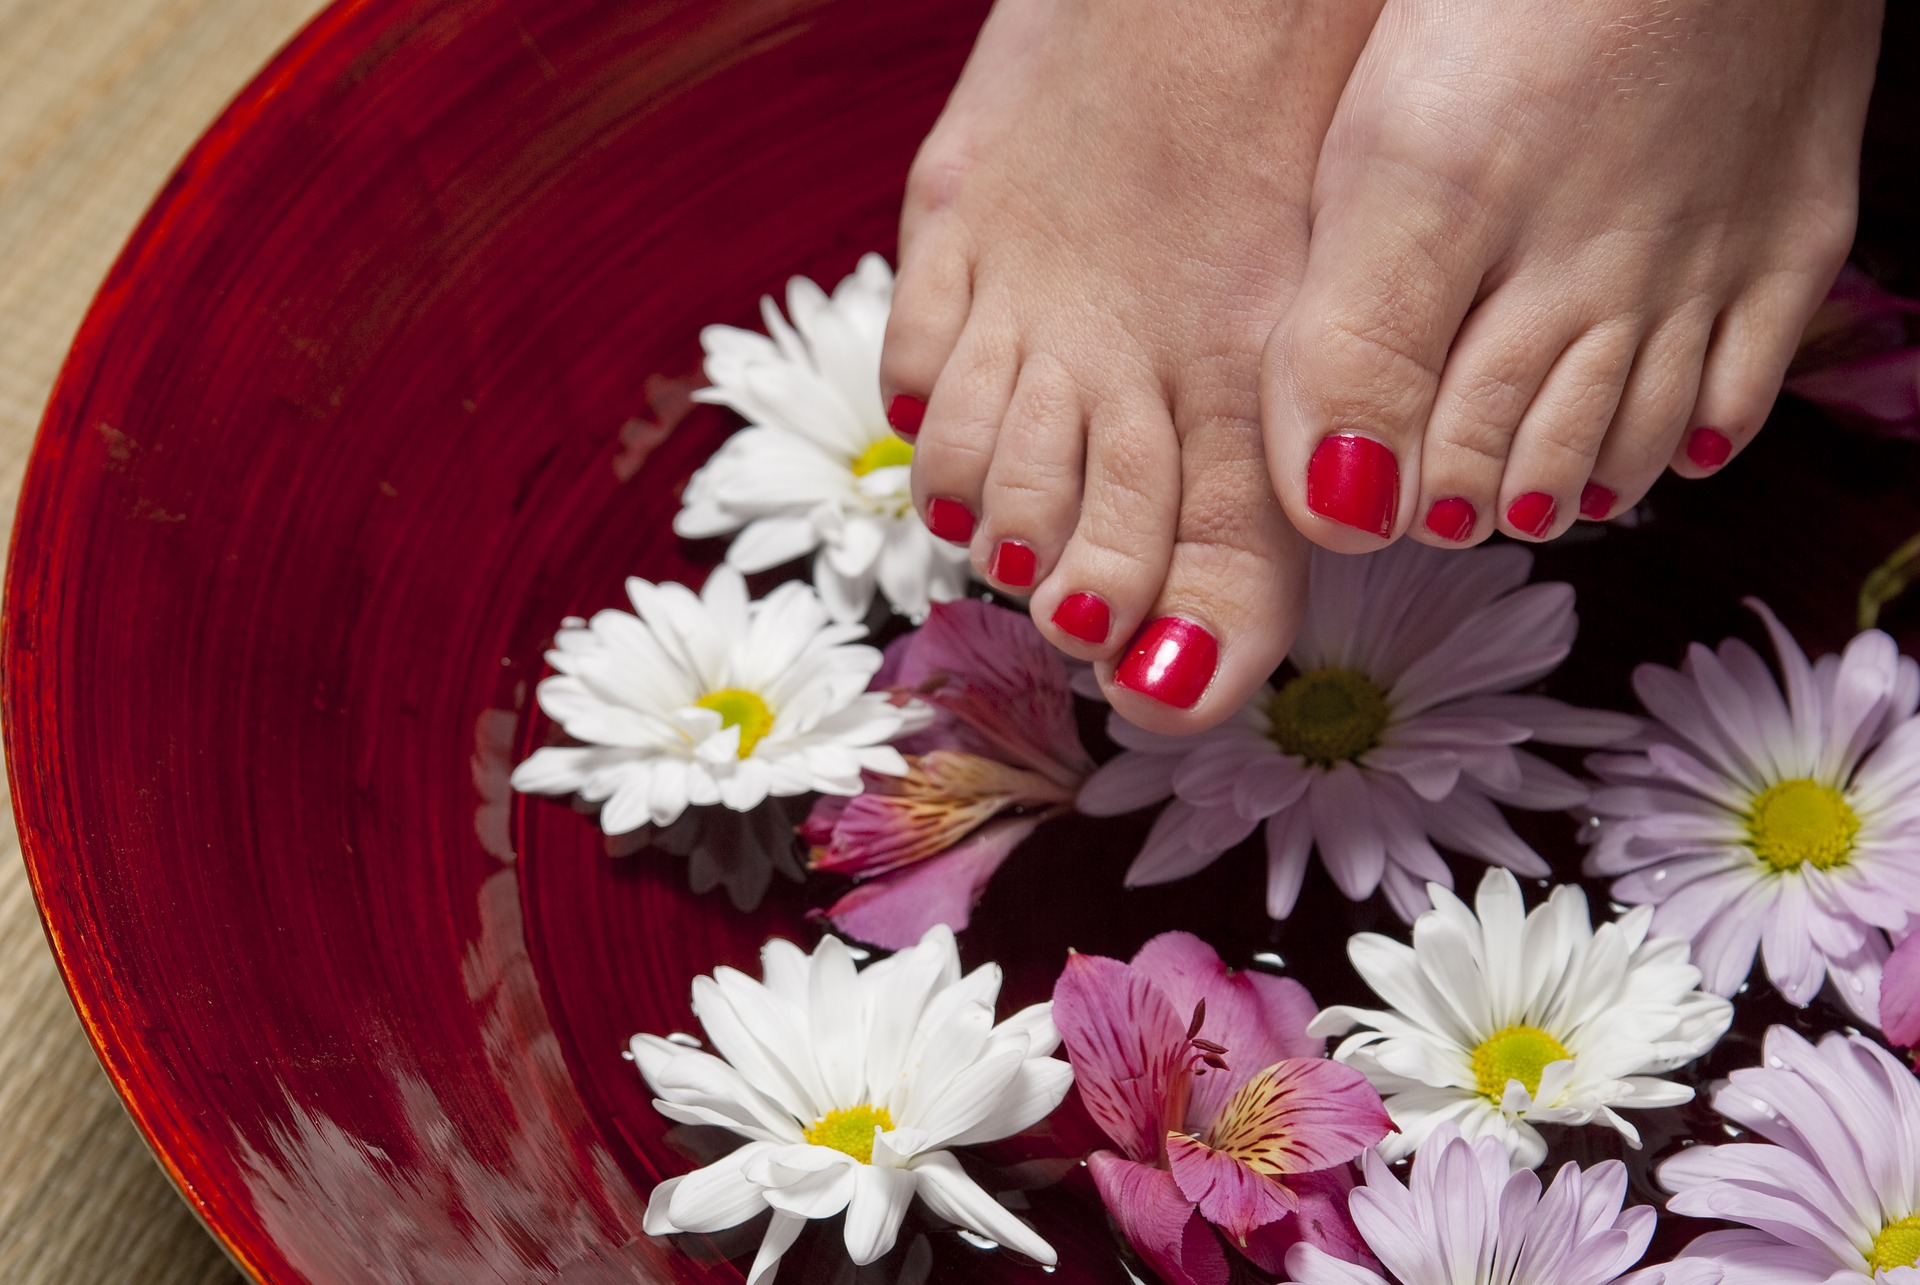 Foot care with water in a bowl